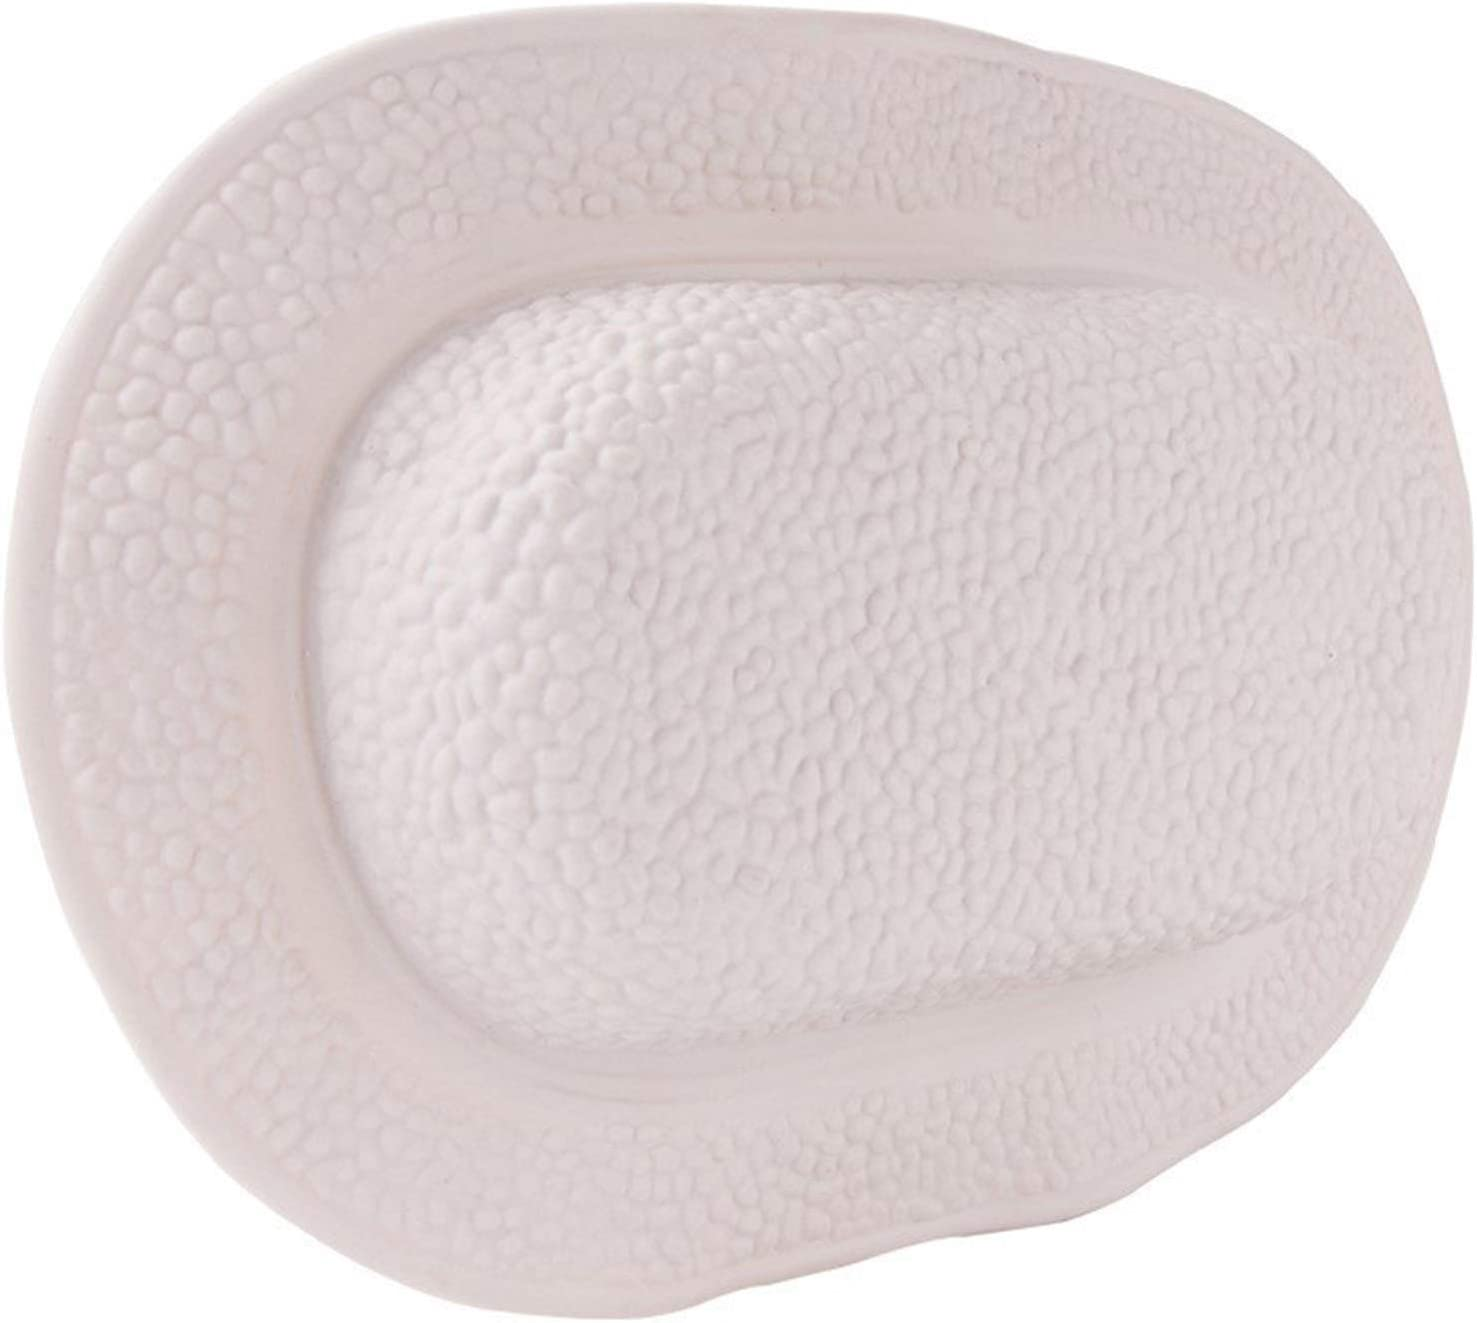 Max 64% OFF Our shop OFFers the best service MHSHZY Bath Pillow with Suction and Cups Supports Neck Shoulders